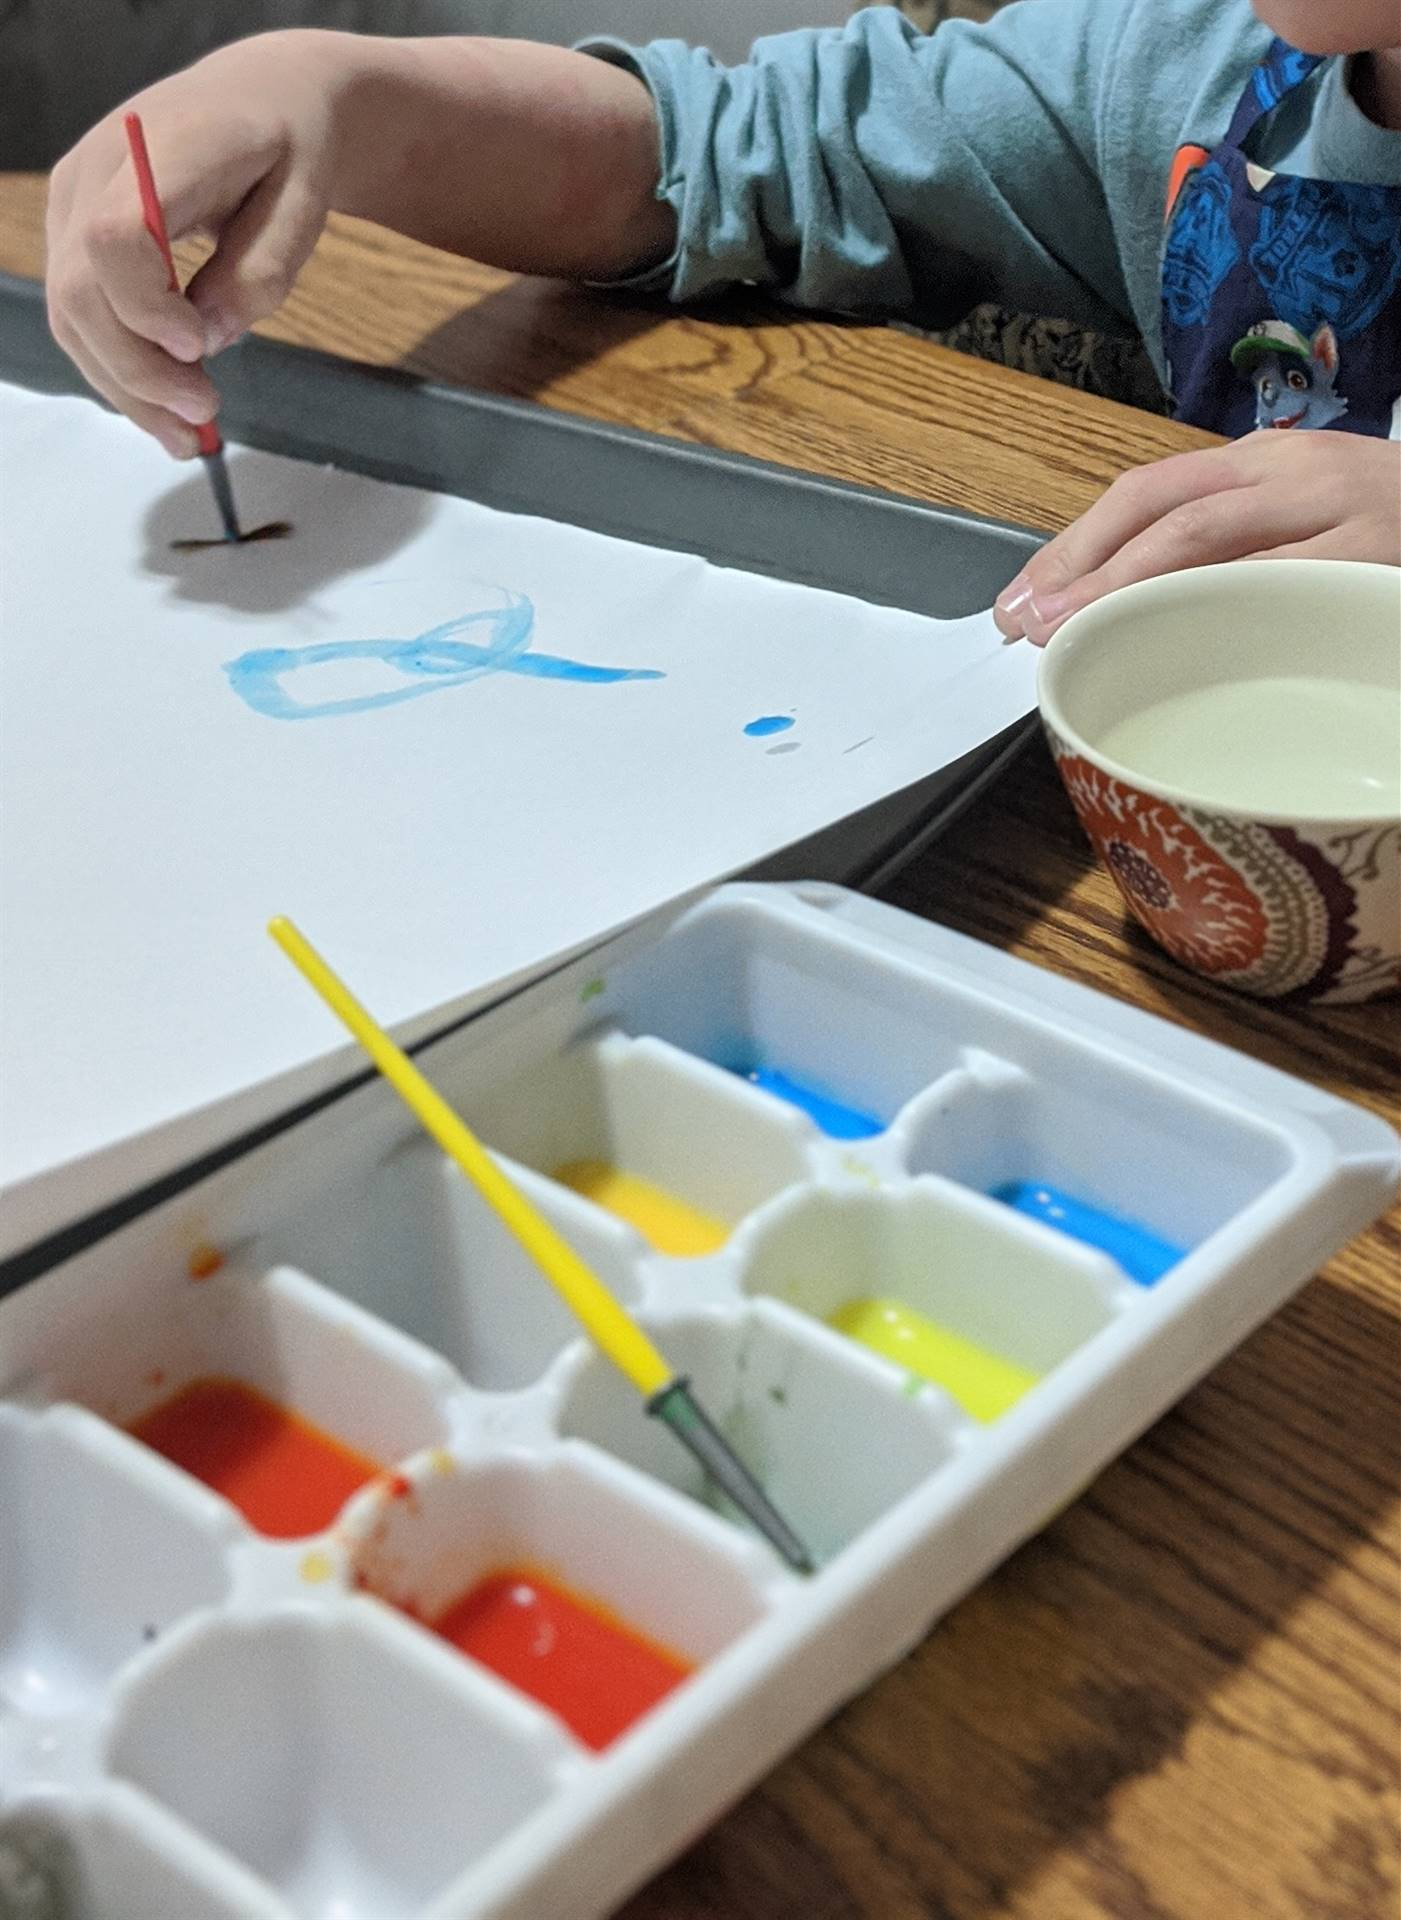 student painting using an ice cube tray as the color palette